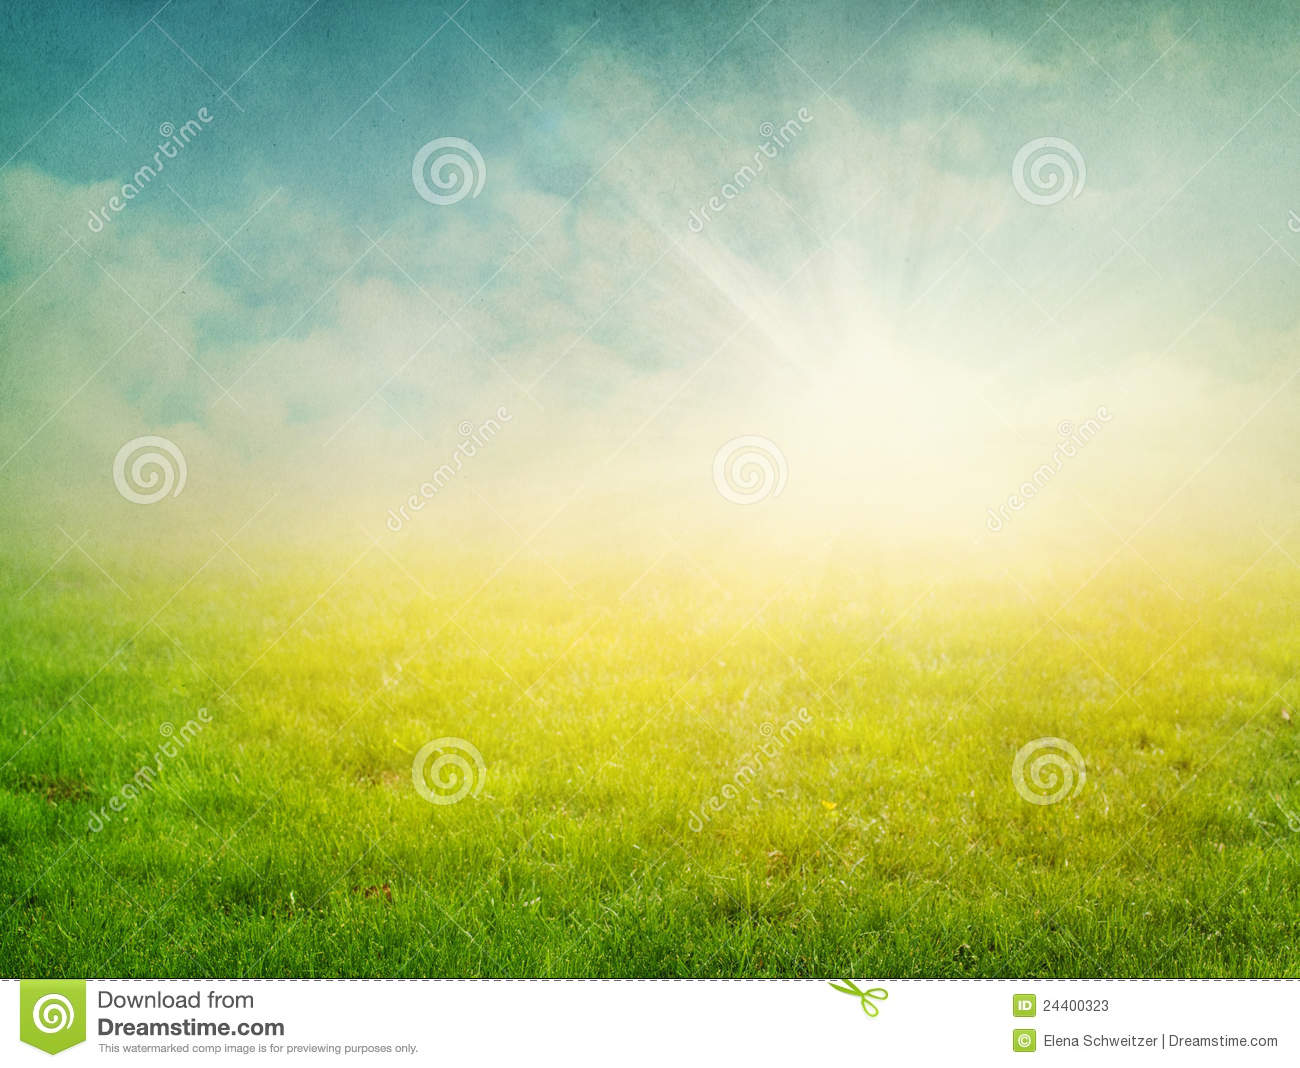 Summer abstract nature background